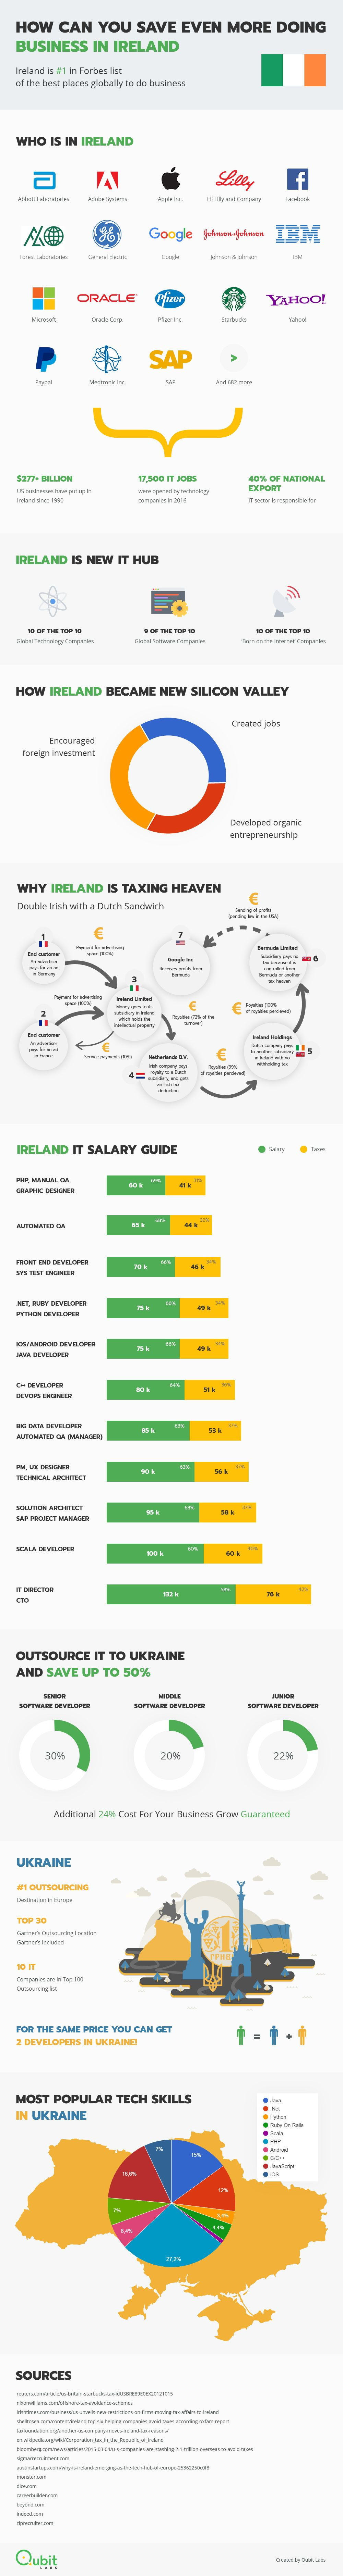 Irish Tax Heaven for Business: How Companies Save Up Money #Infographic